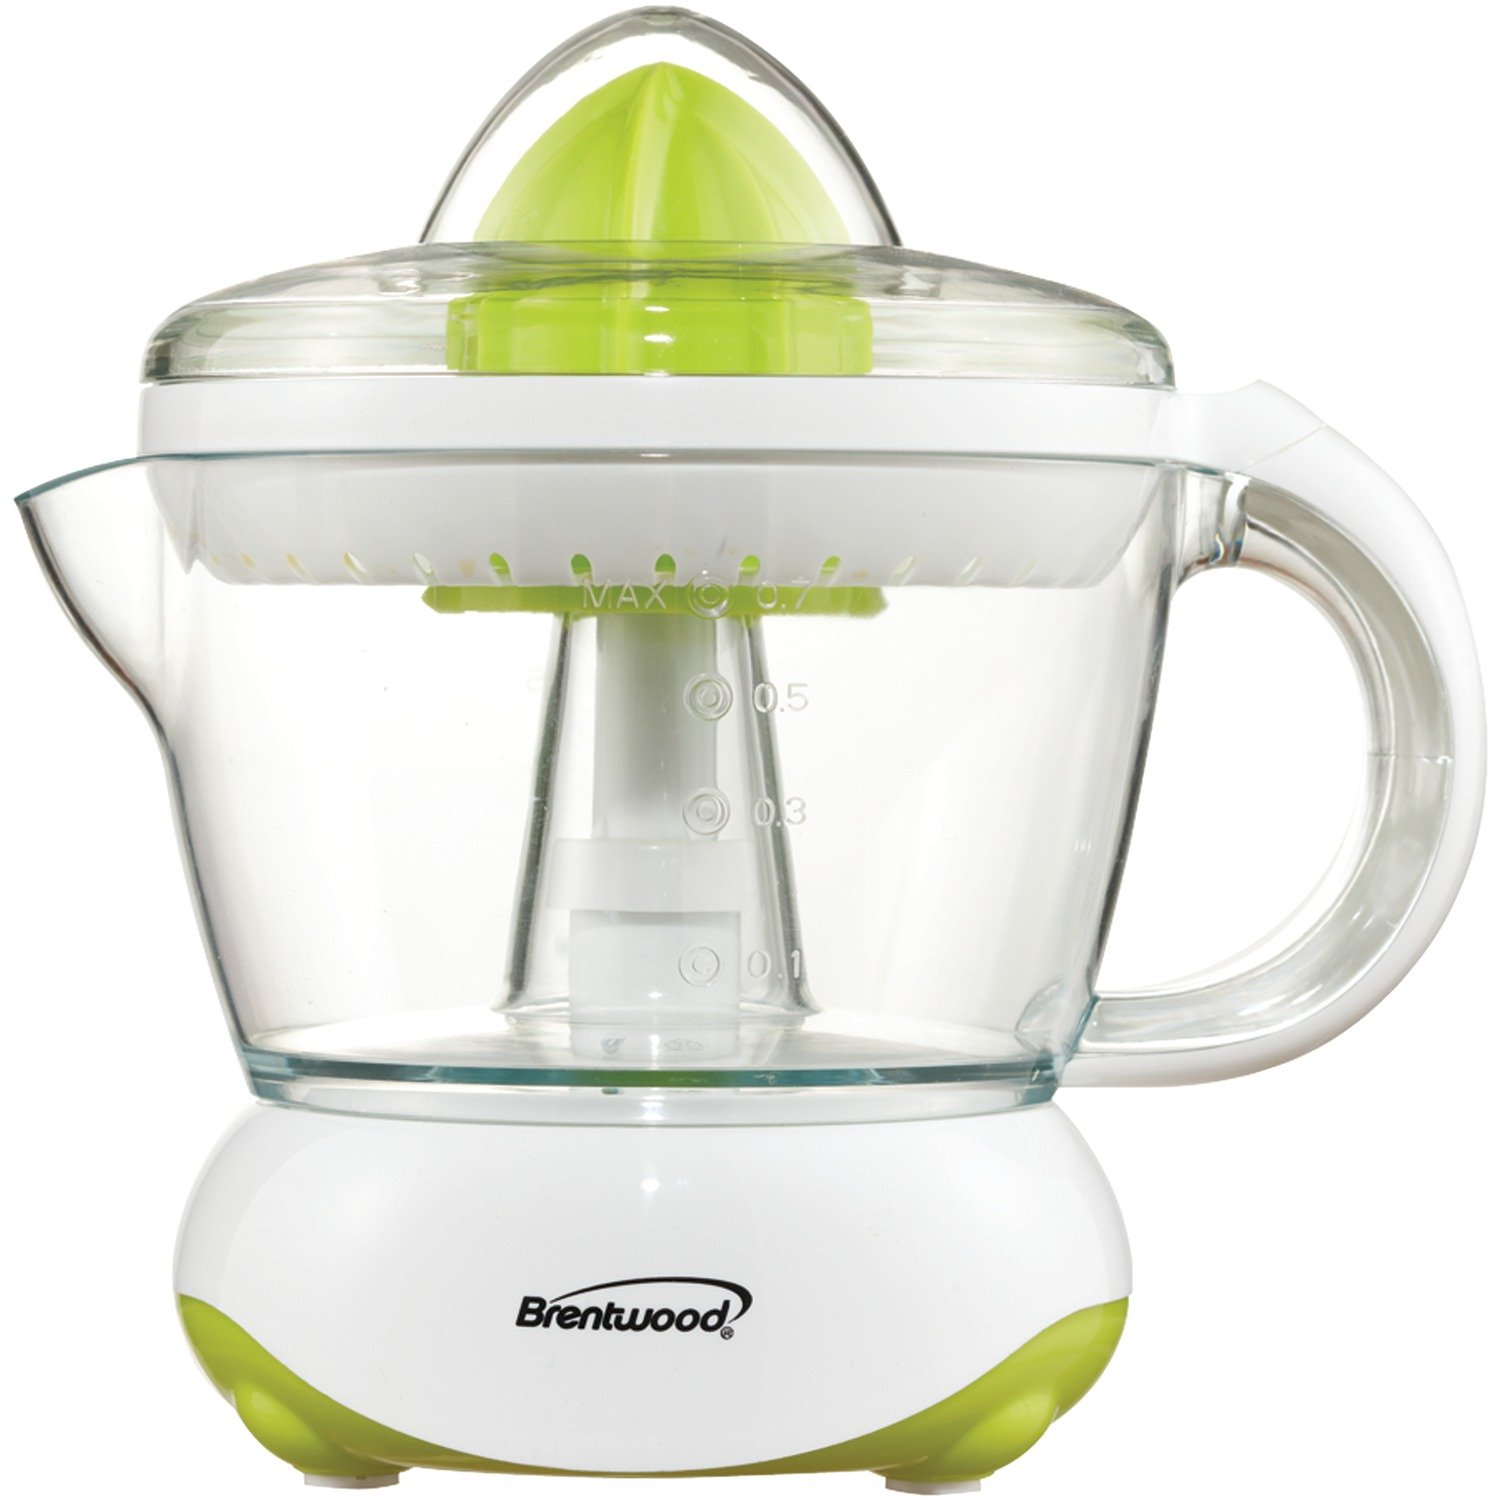 Brentwood J-15 24oz Electric Citrus Juicer, White White Brentwood Appliances